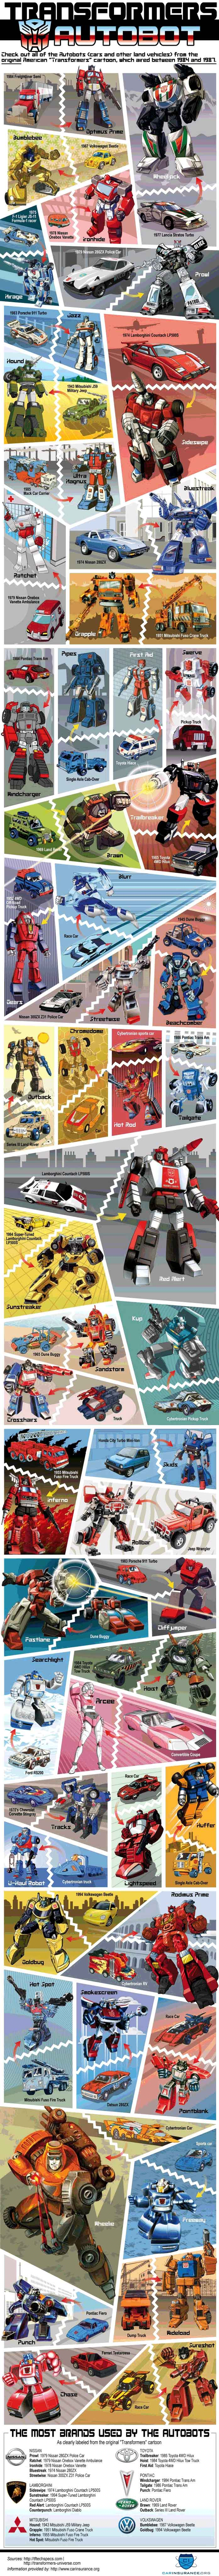 Infographic Transformers: autobots